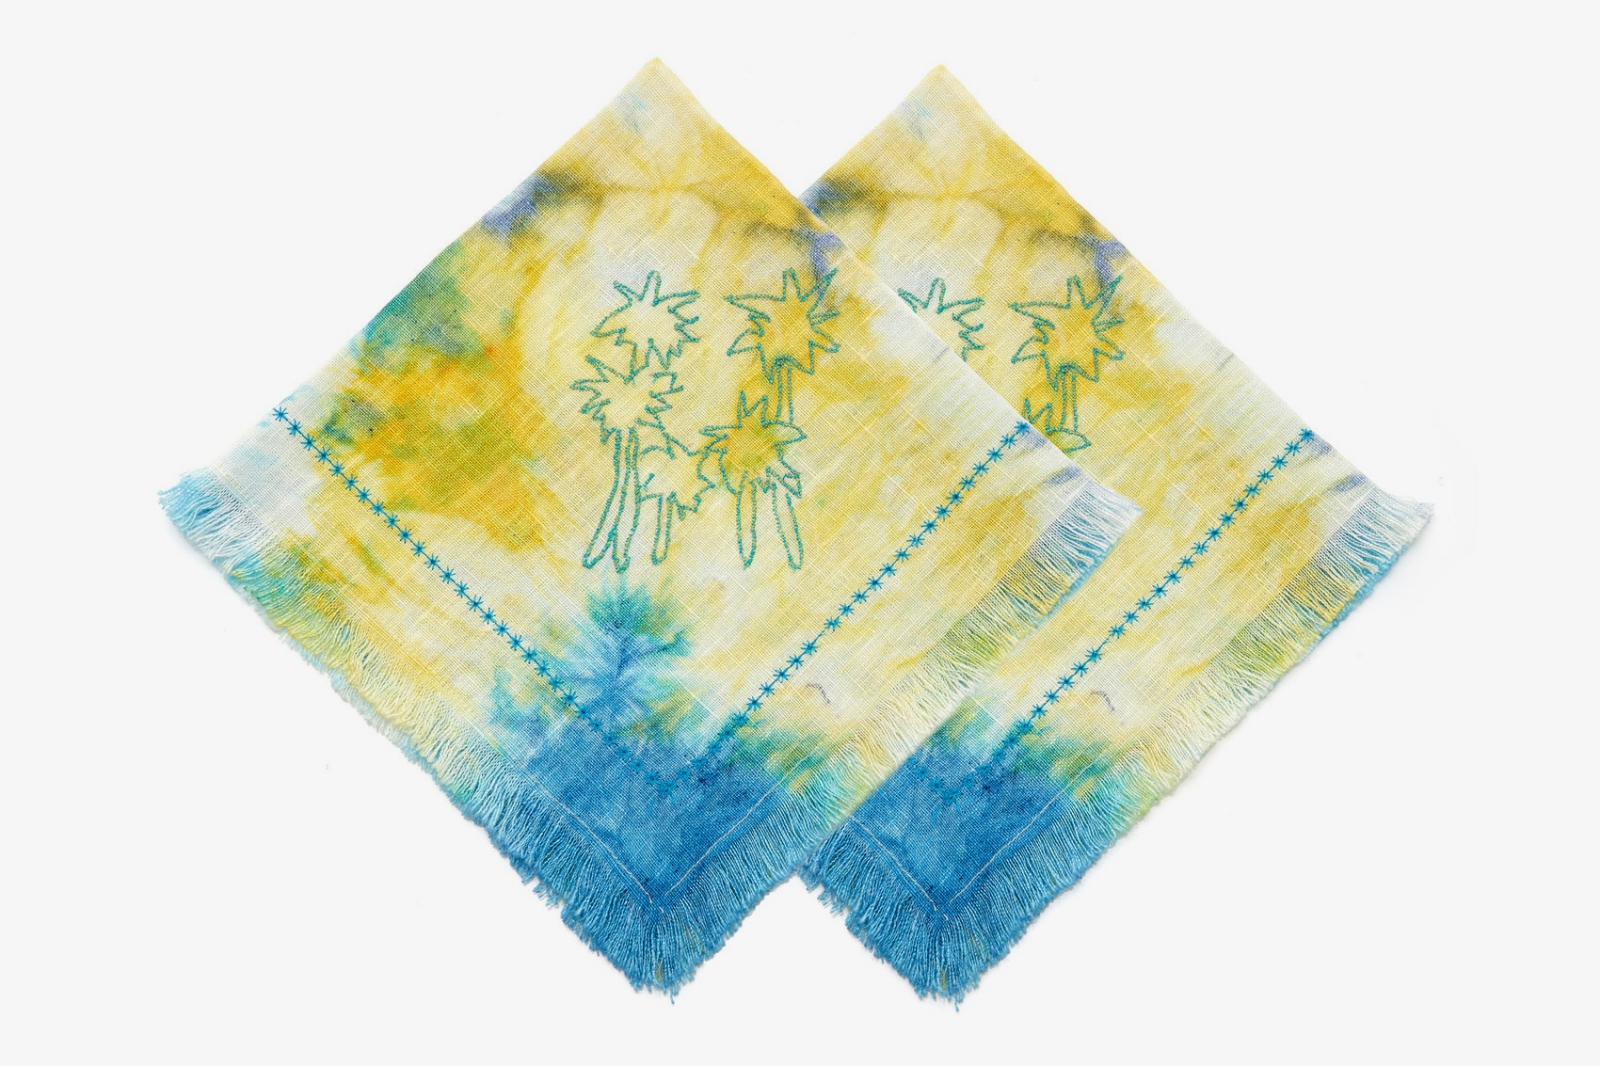 Hand Dyed & Stitched Linen Embroidered Napkins